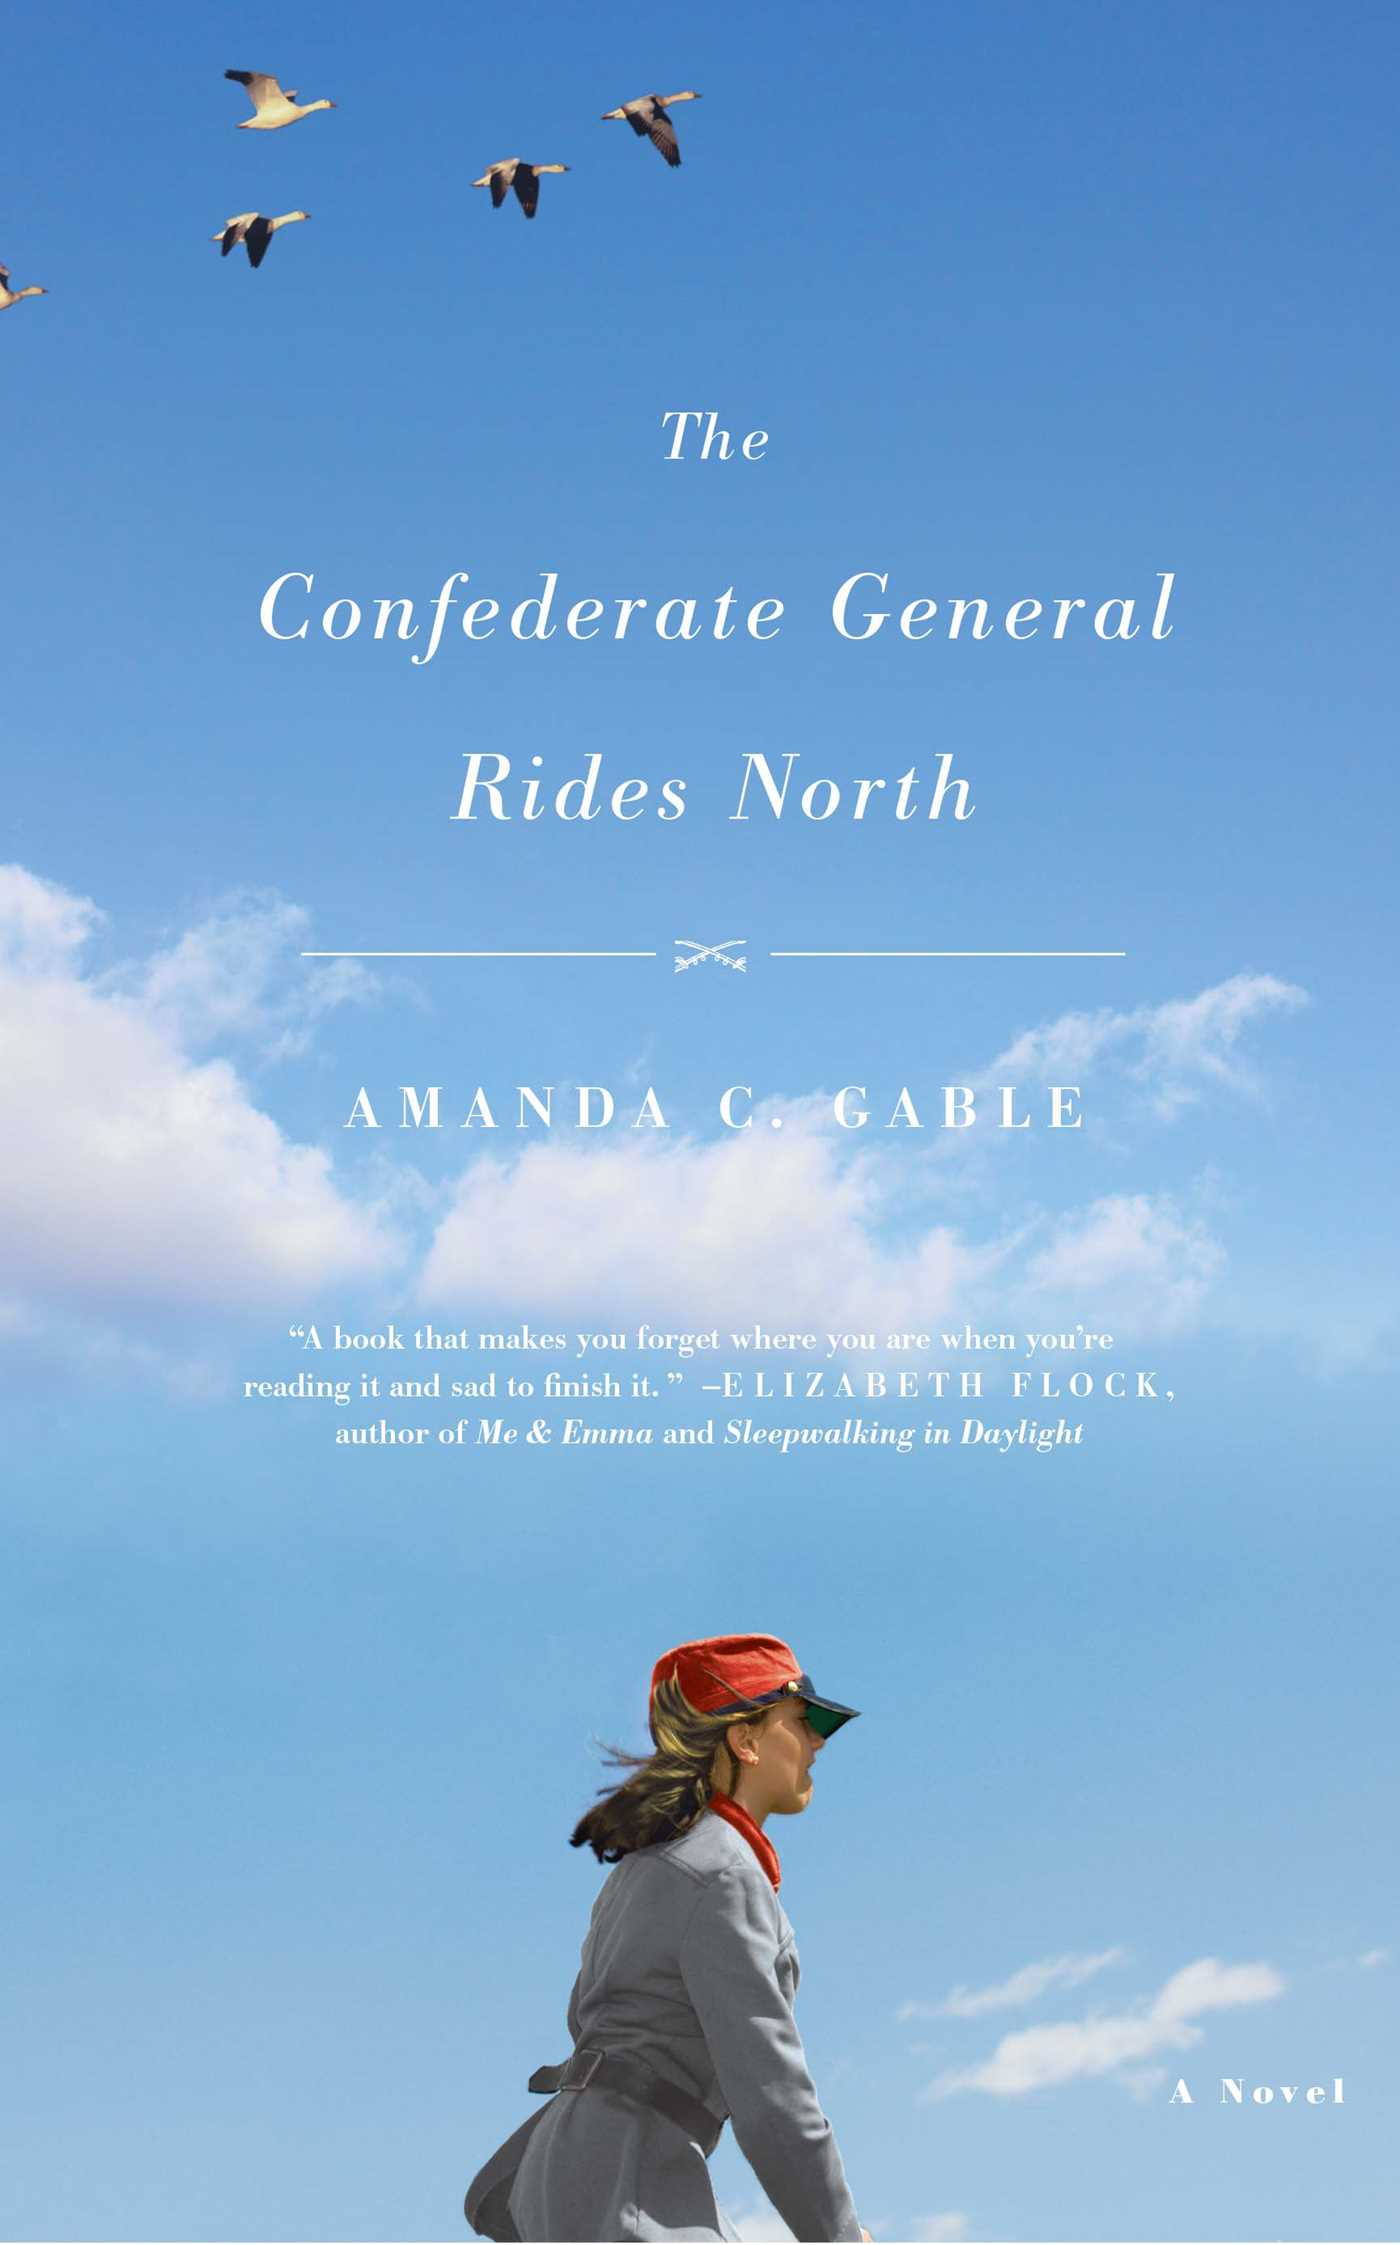 The confederate general rides north 9781416598404 hr